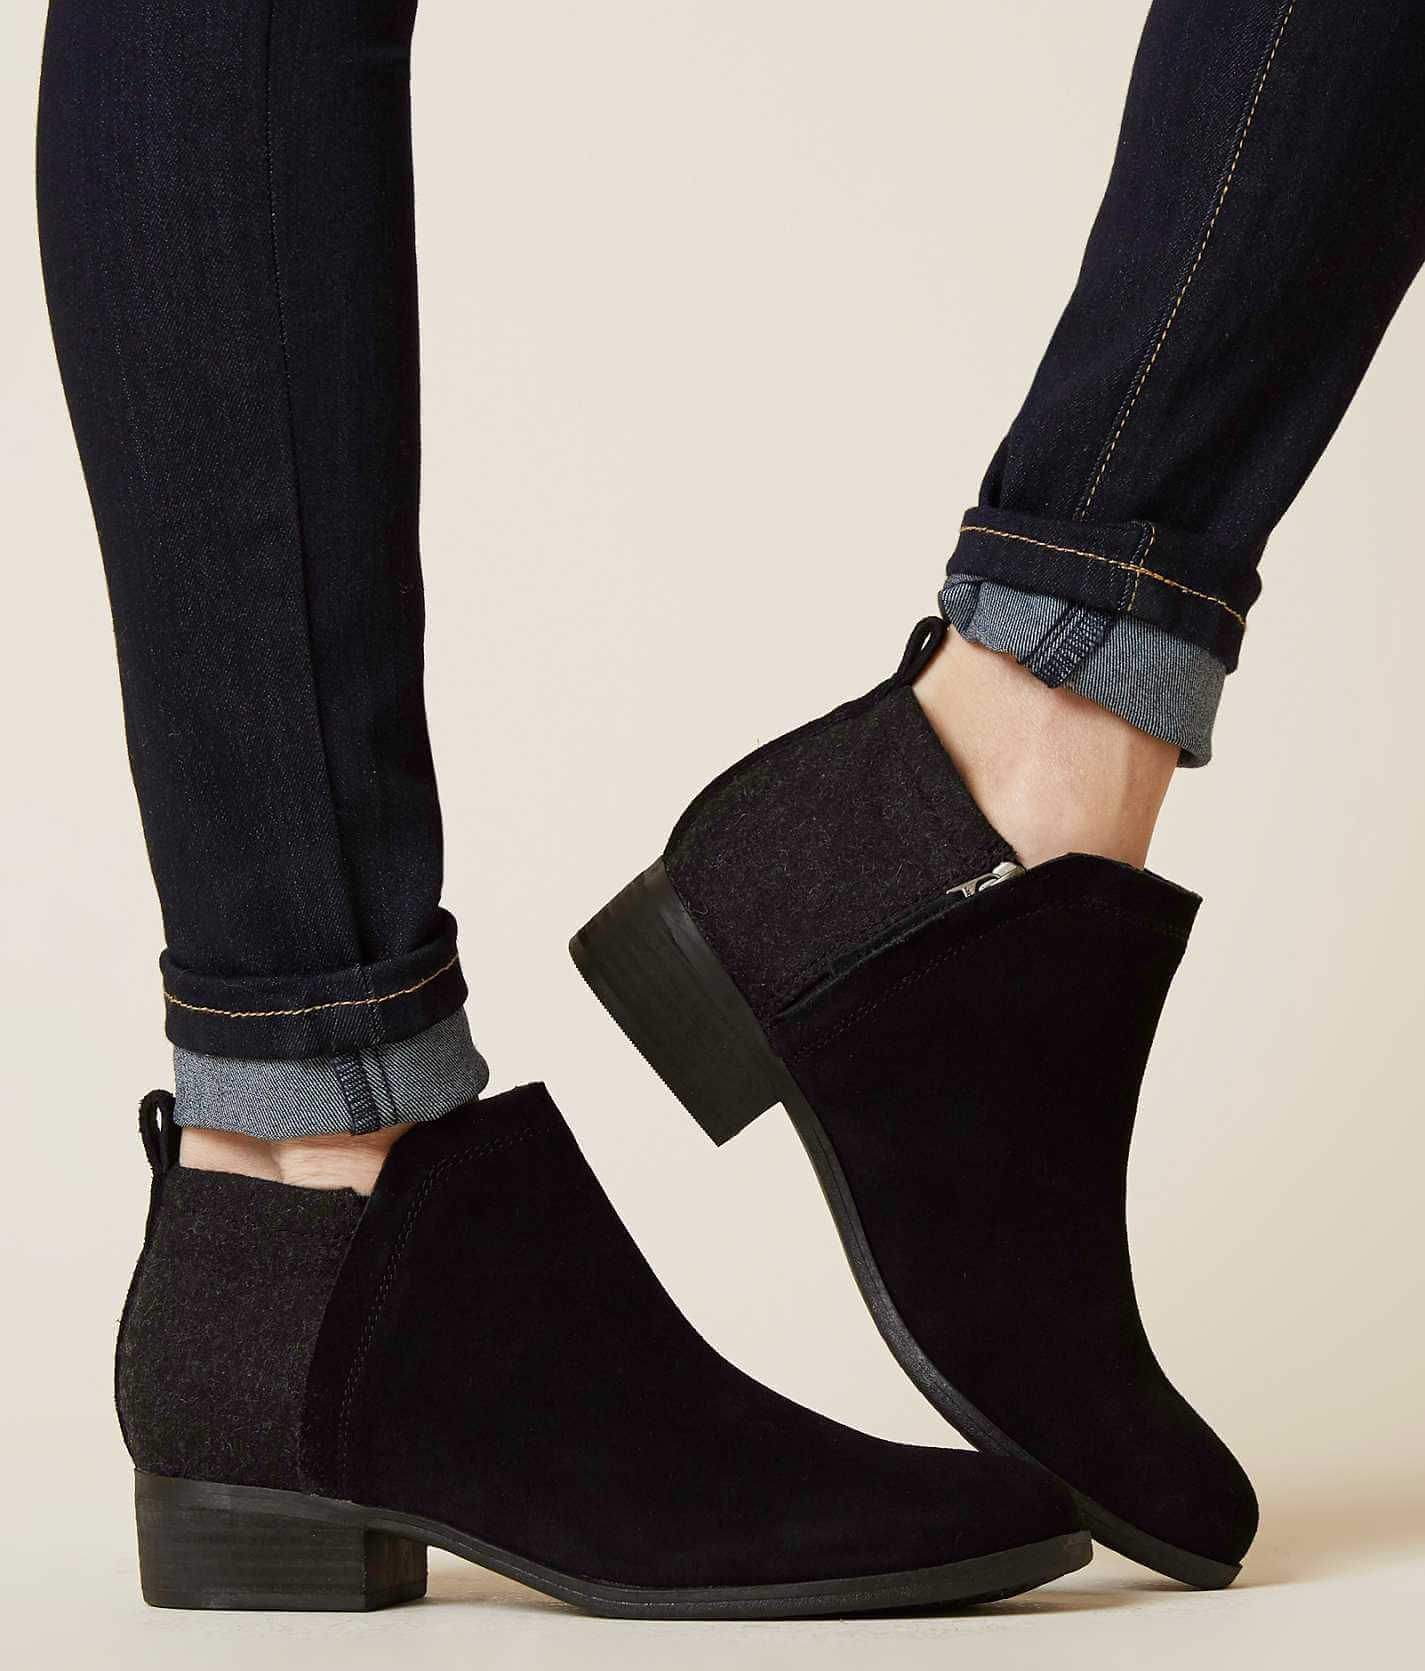 d37a4d32b59 TOMS Deia Ankle Boot - Women s Shoes in Black Suede